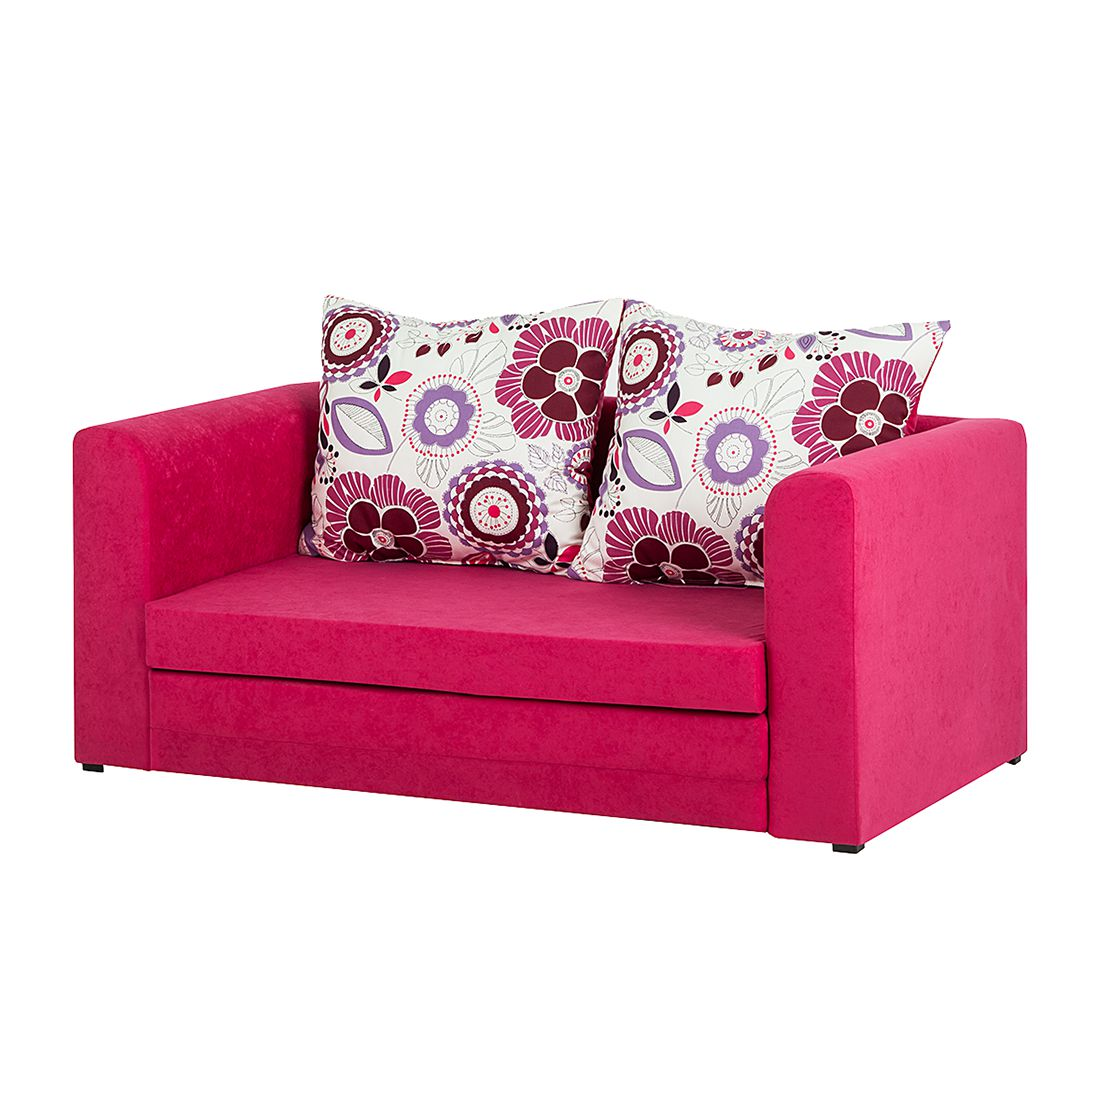 Canapé convertible Petty - Microfibre rose, mooved